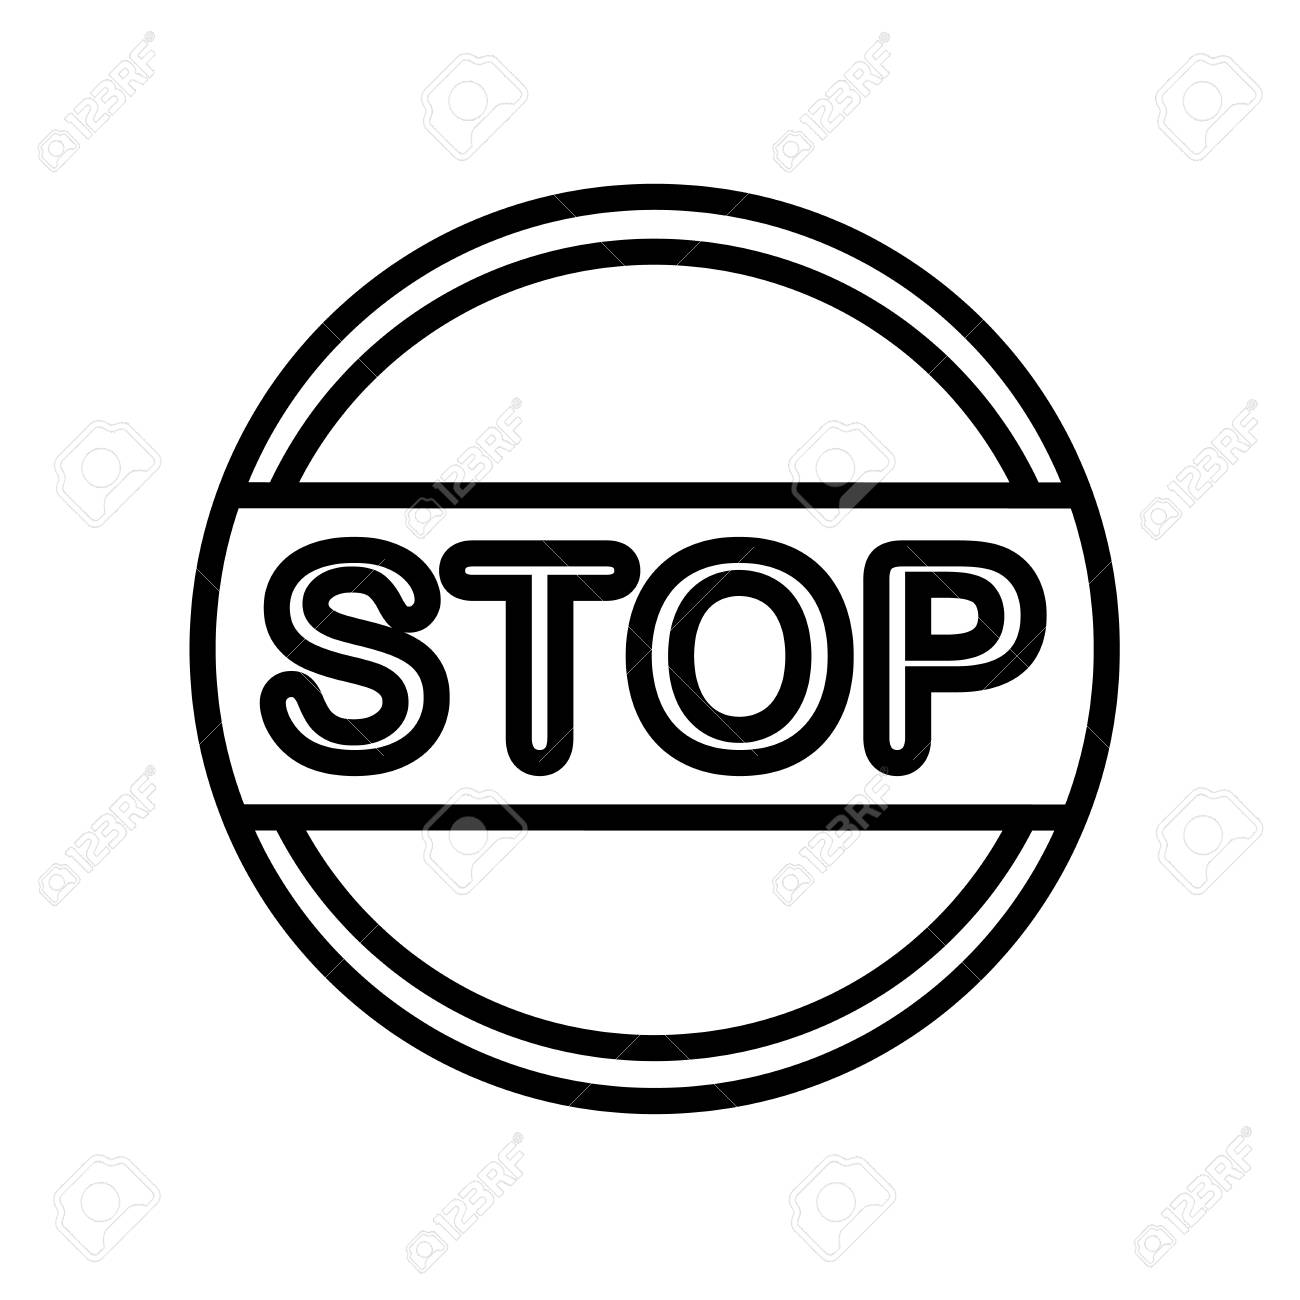 Stop icon vector isolated on white background, Stop transparent